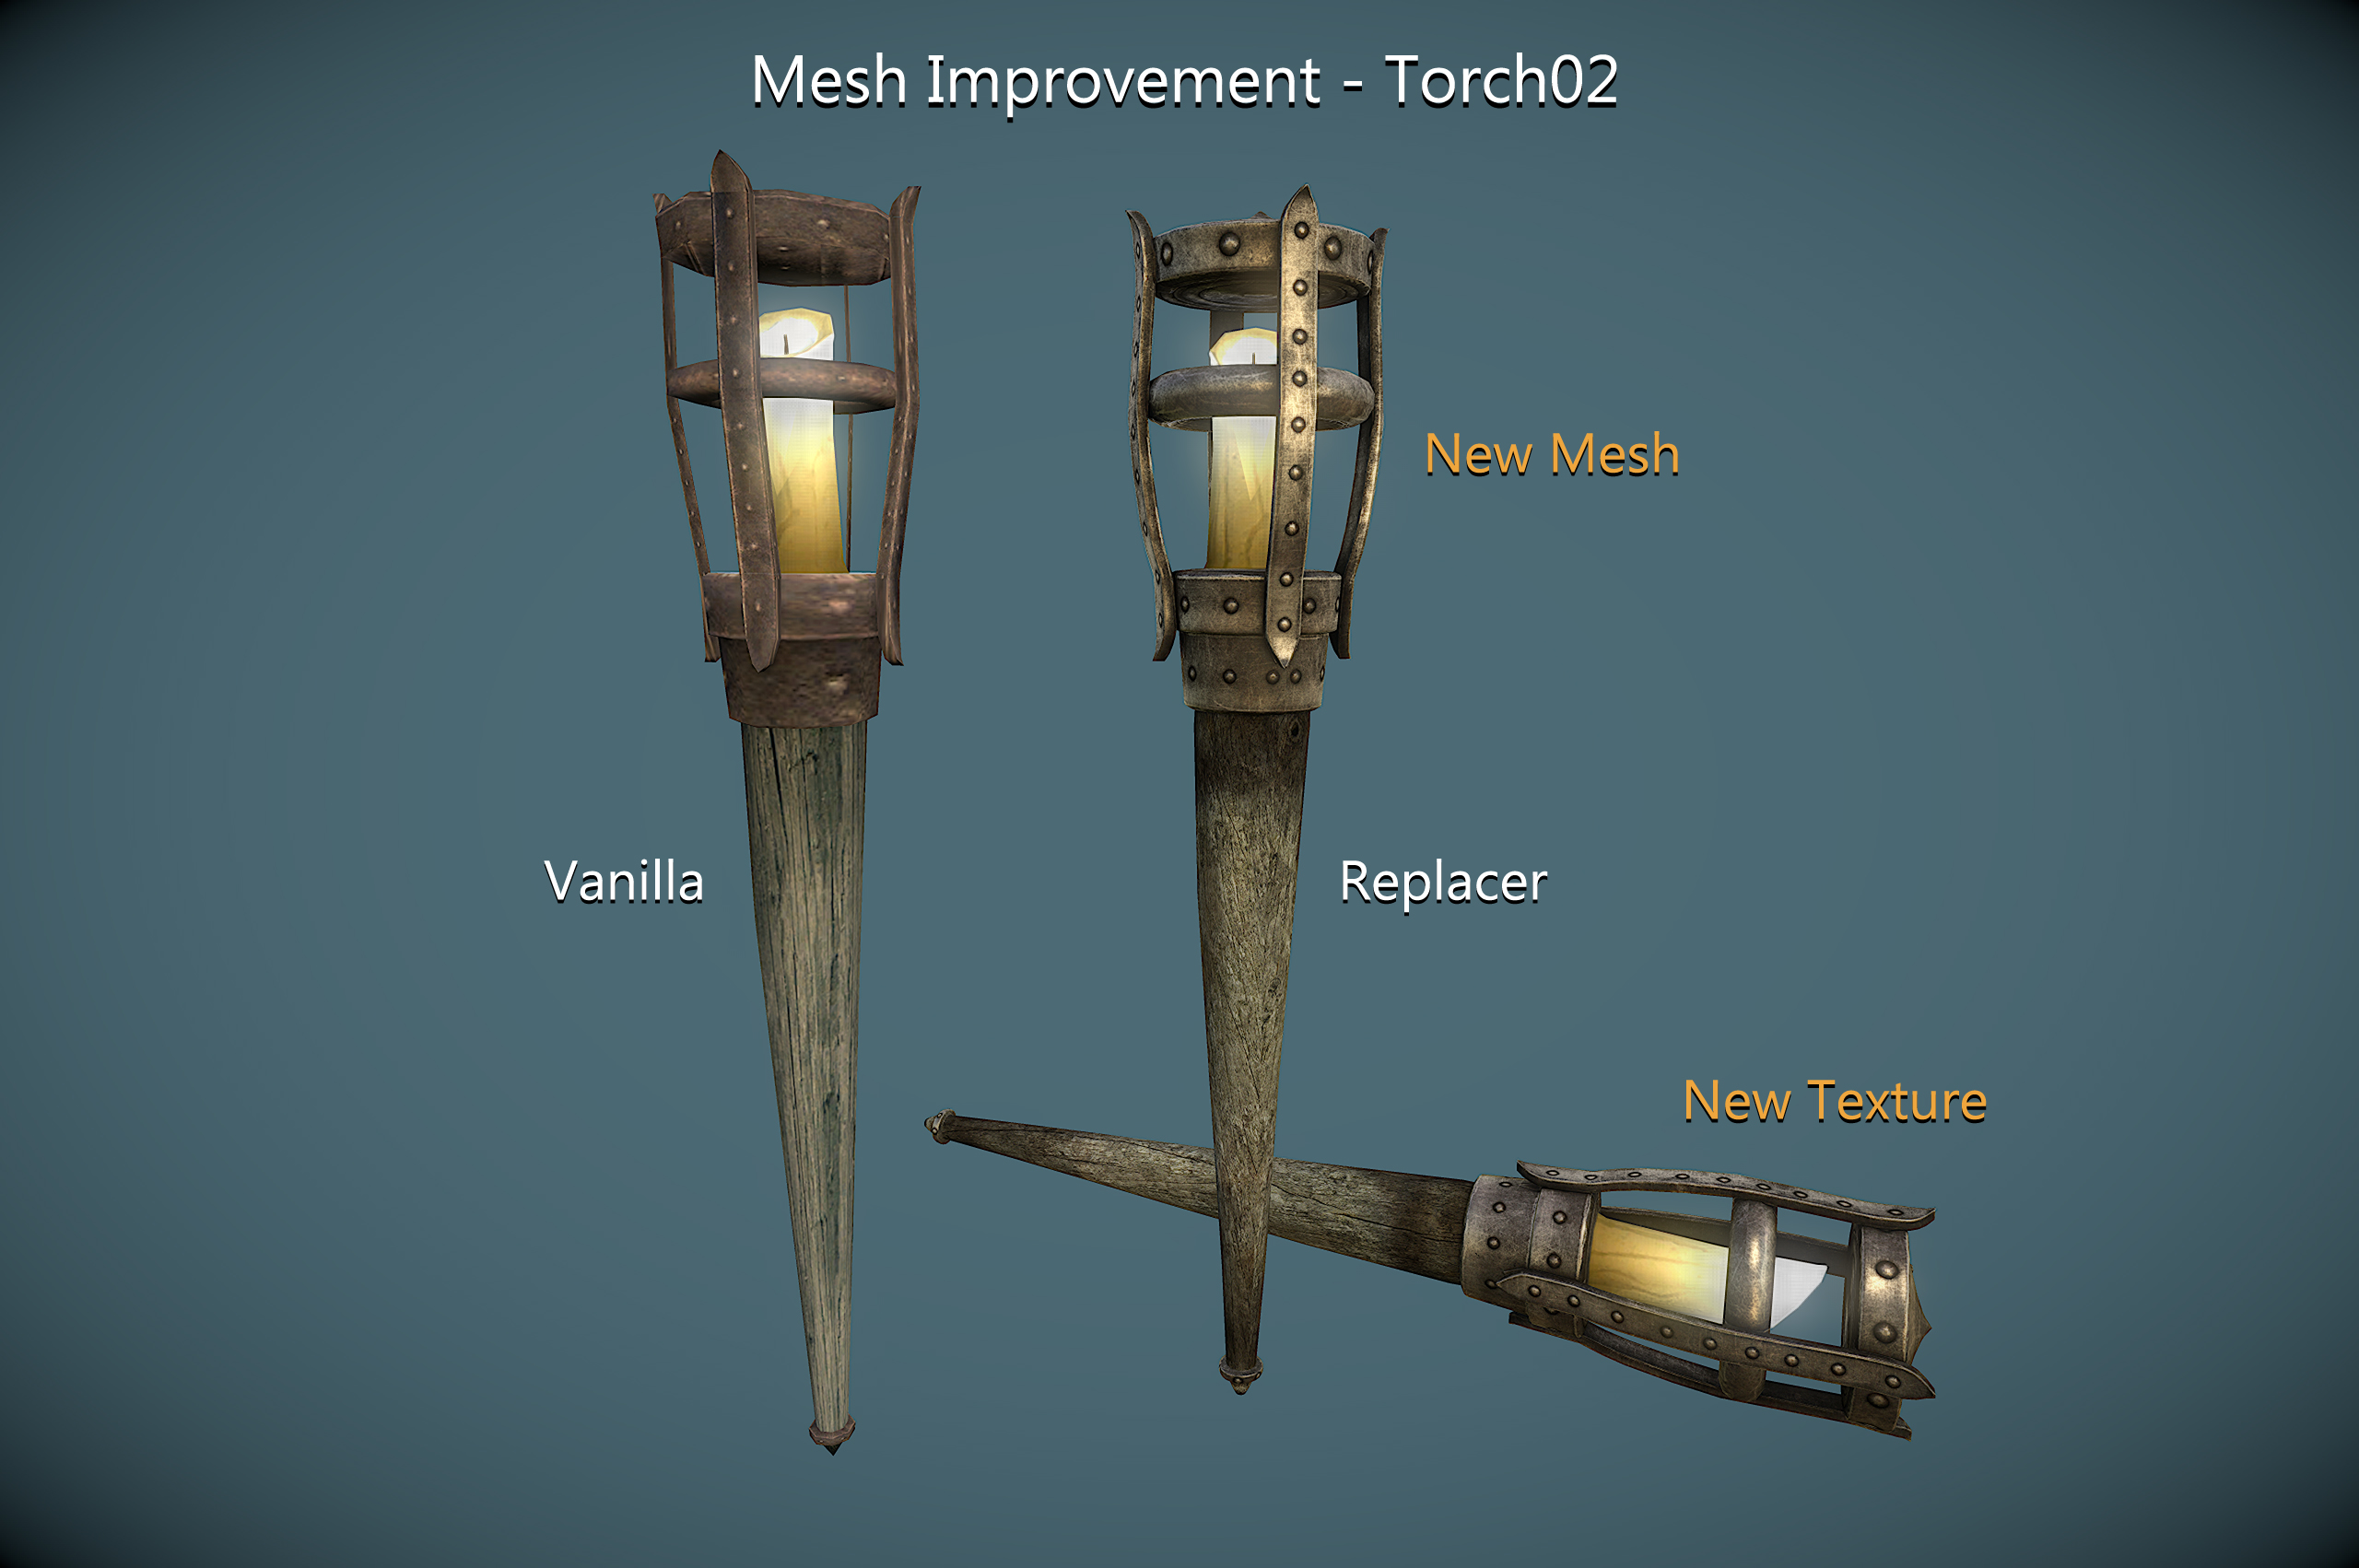 Mesh Improvement - Torch02